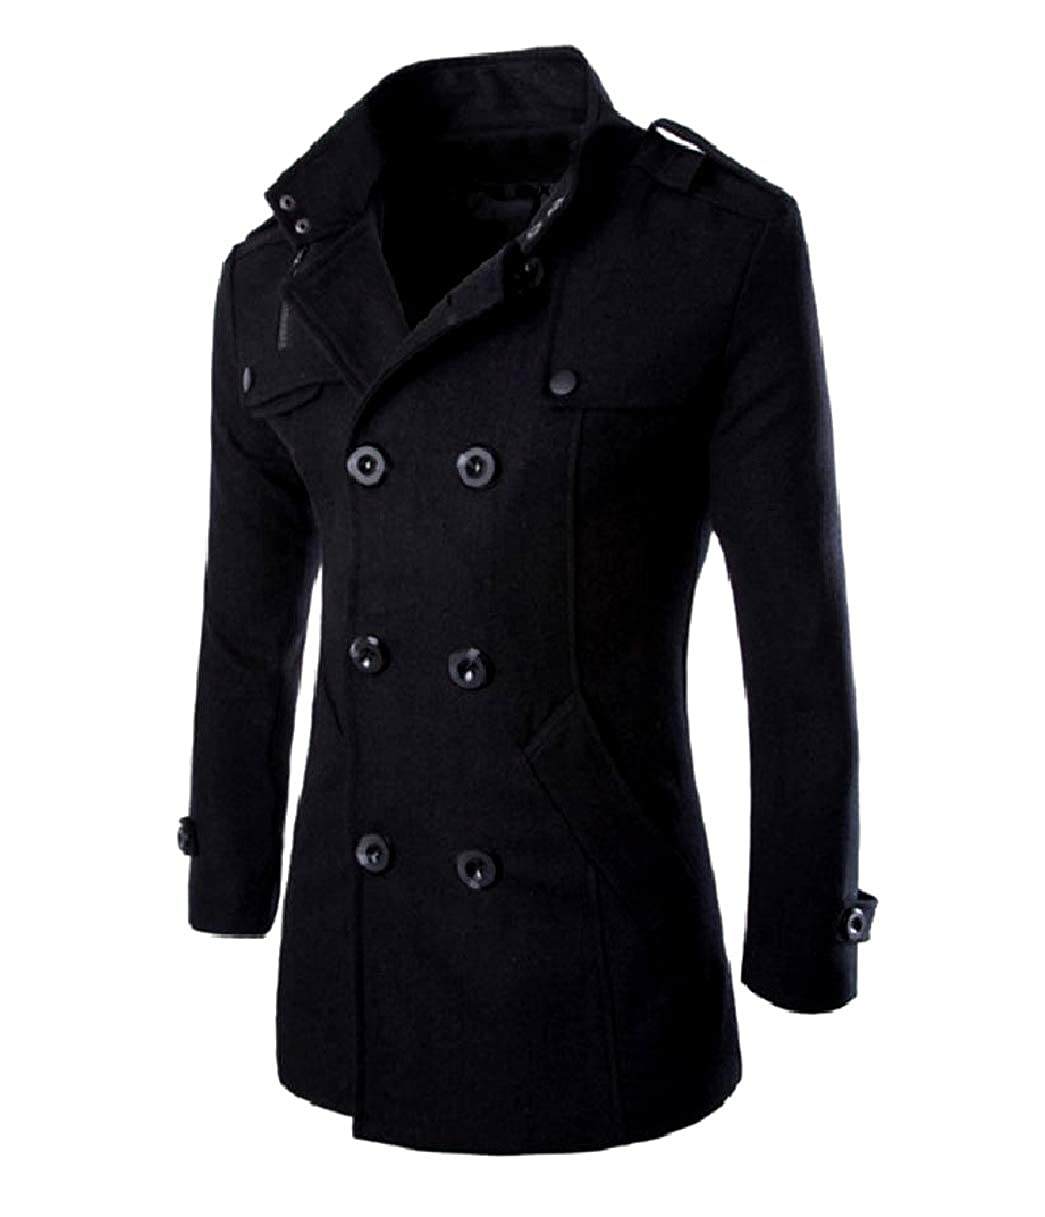 28e1aae69b6 Black FXLM FXLM FXLM Mens Trench Jacket Woolen Fall Winter Double-Breasted  Pea Coat b1d9b3